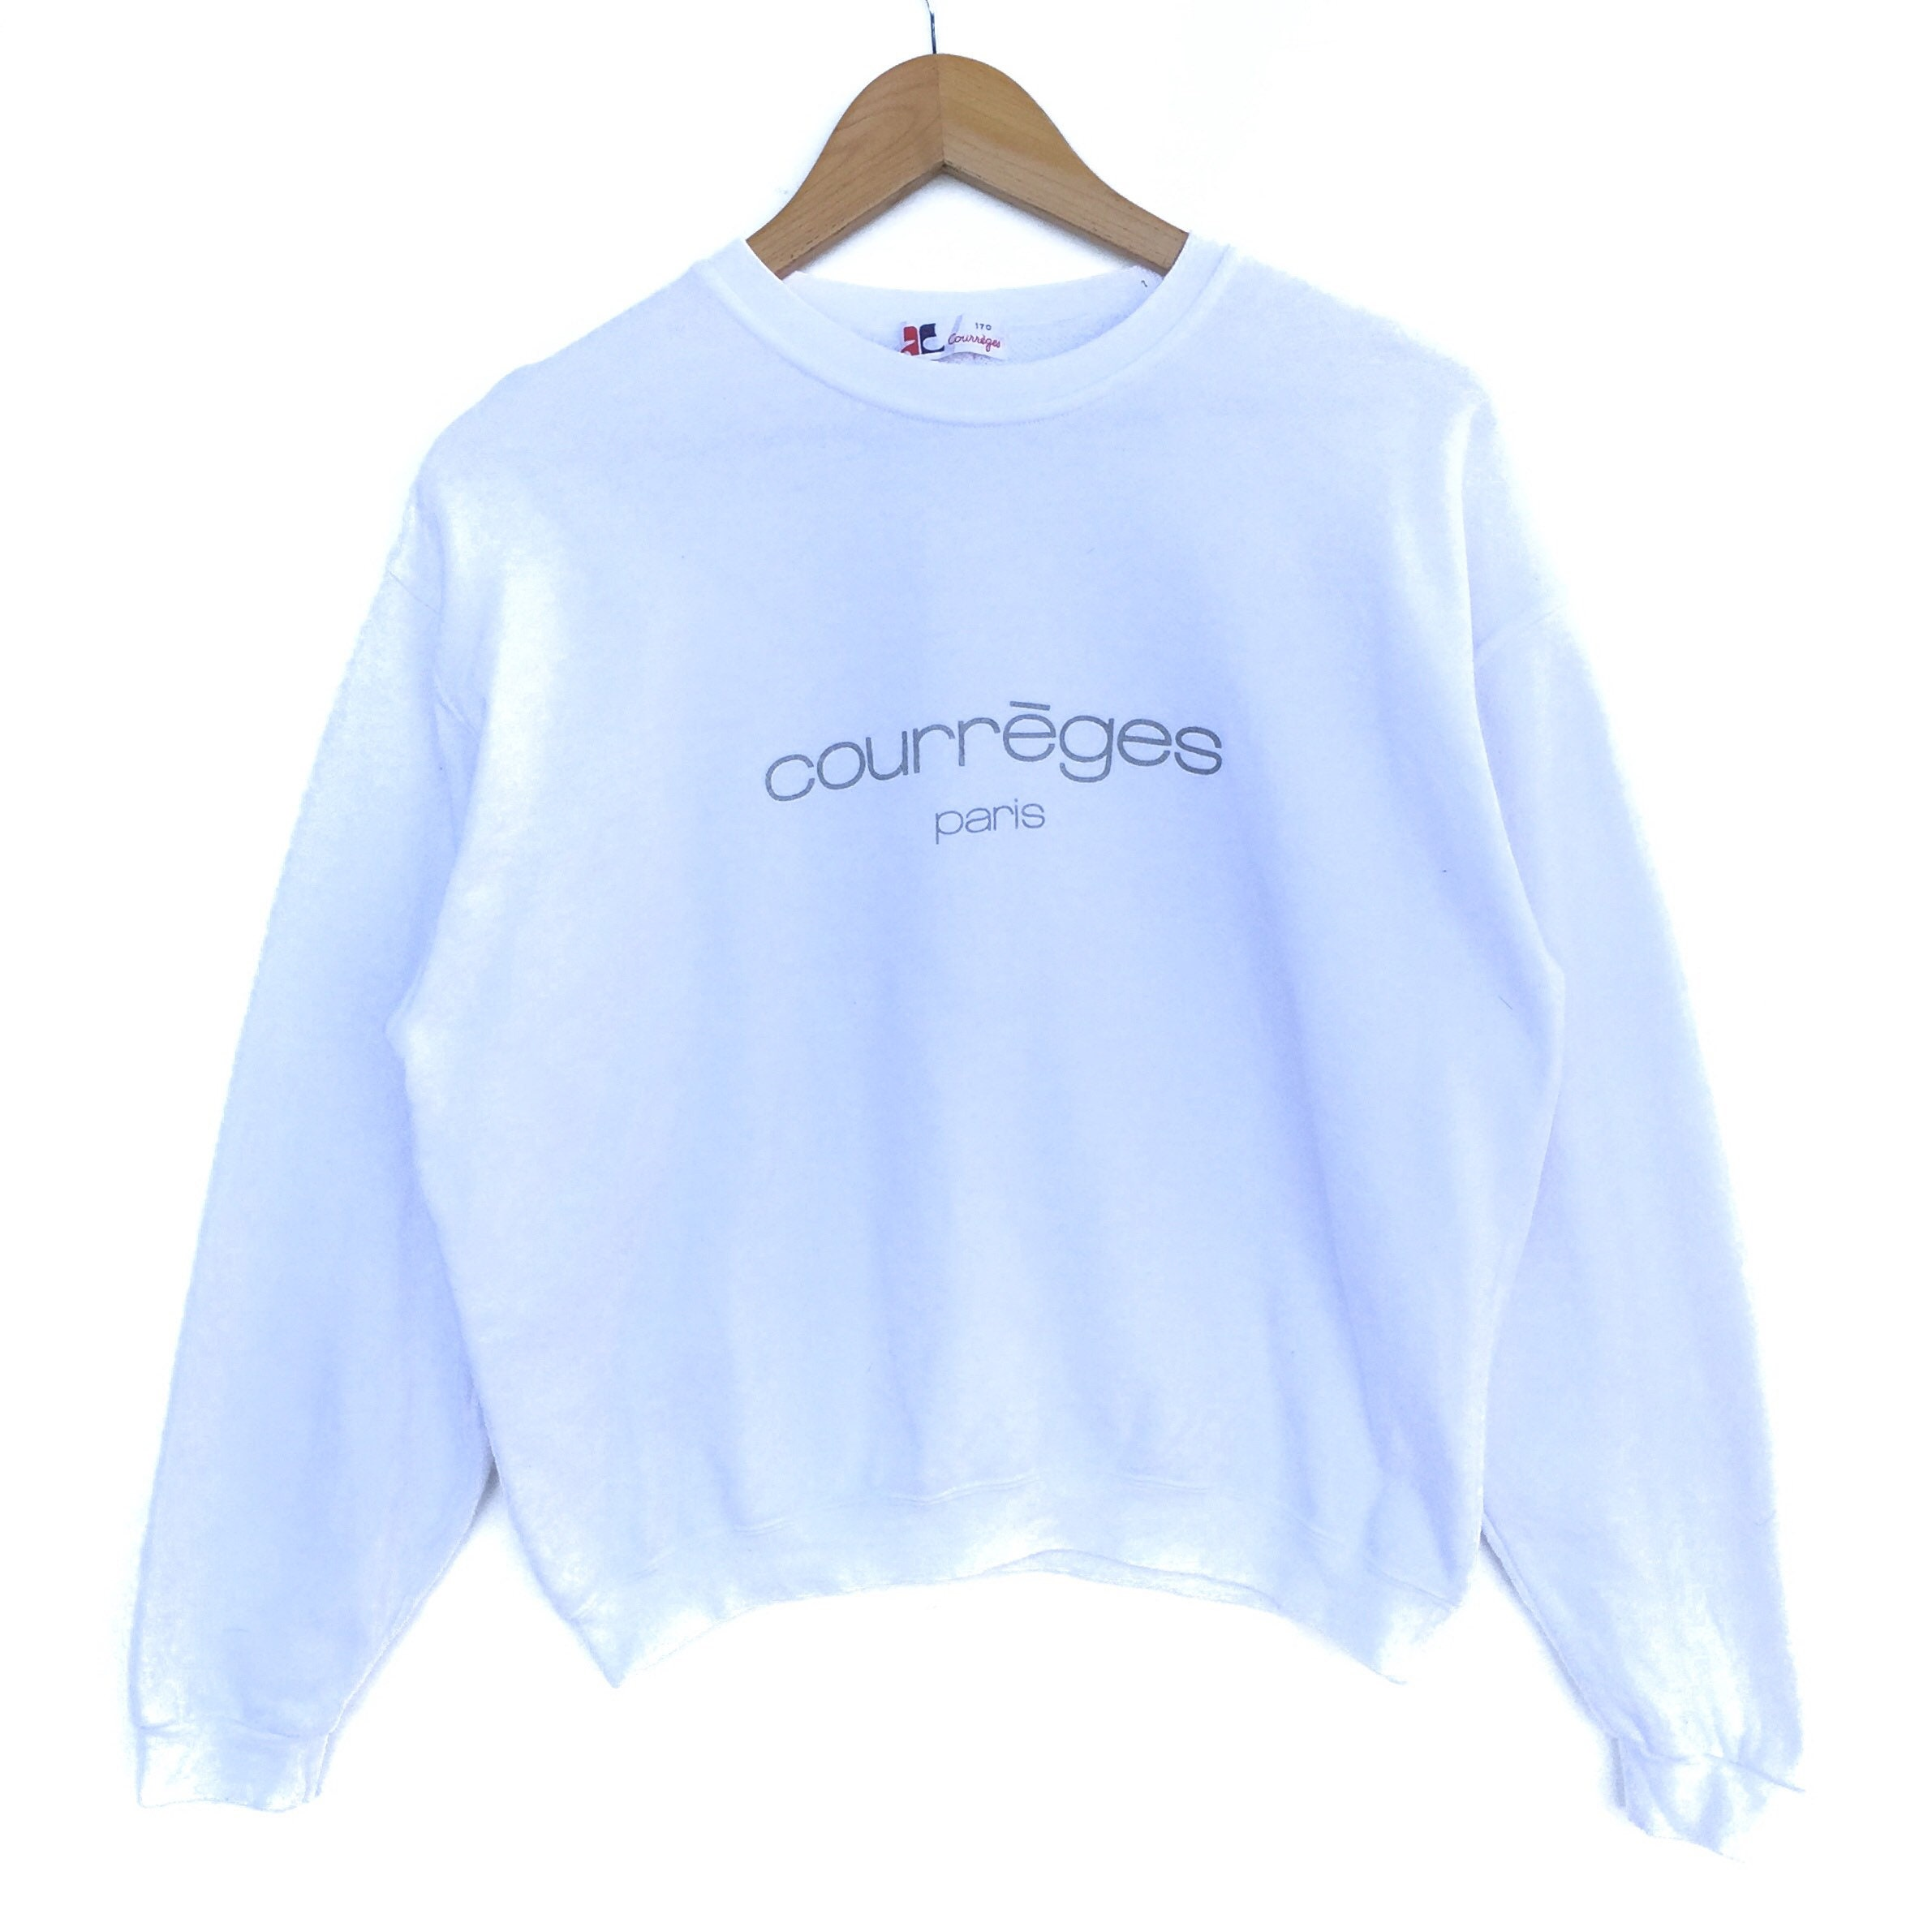 first look best loved online retailer Courreges Sweatshirt Big Logo Big Logo 170A Size Sweat Sport Sweater Jumper  Pullover Shirt Jacket Vintage 90's white colour